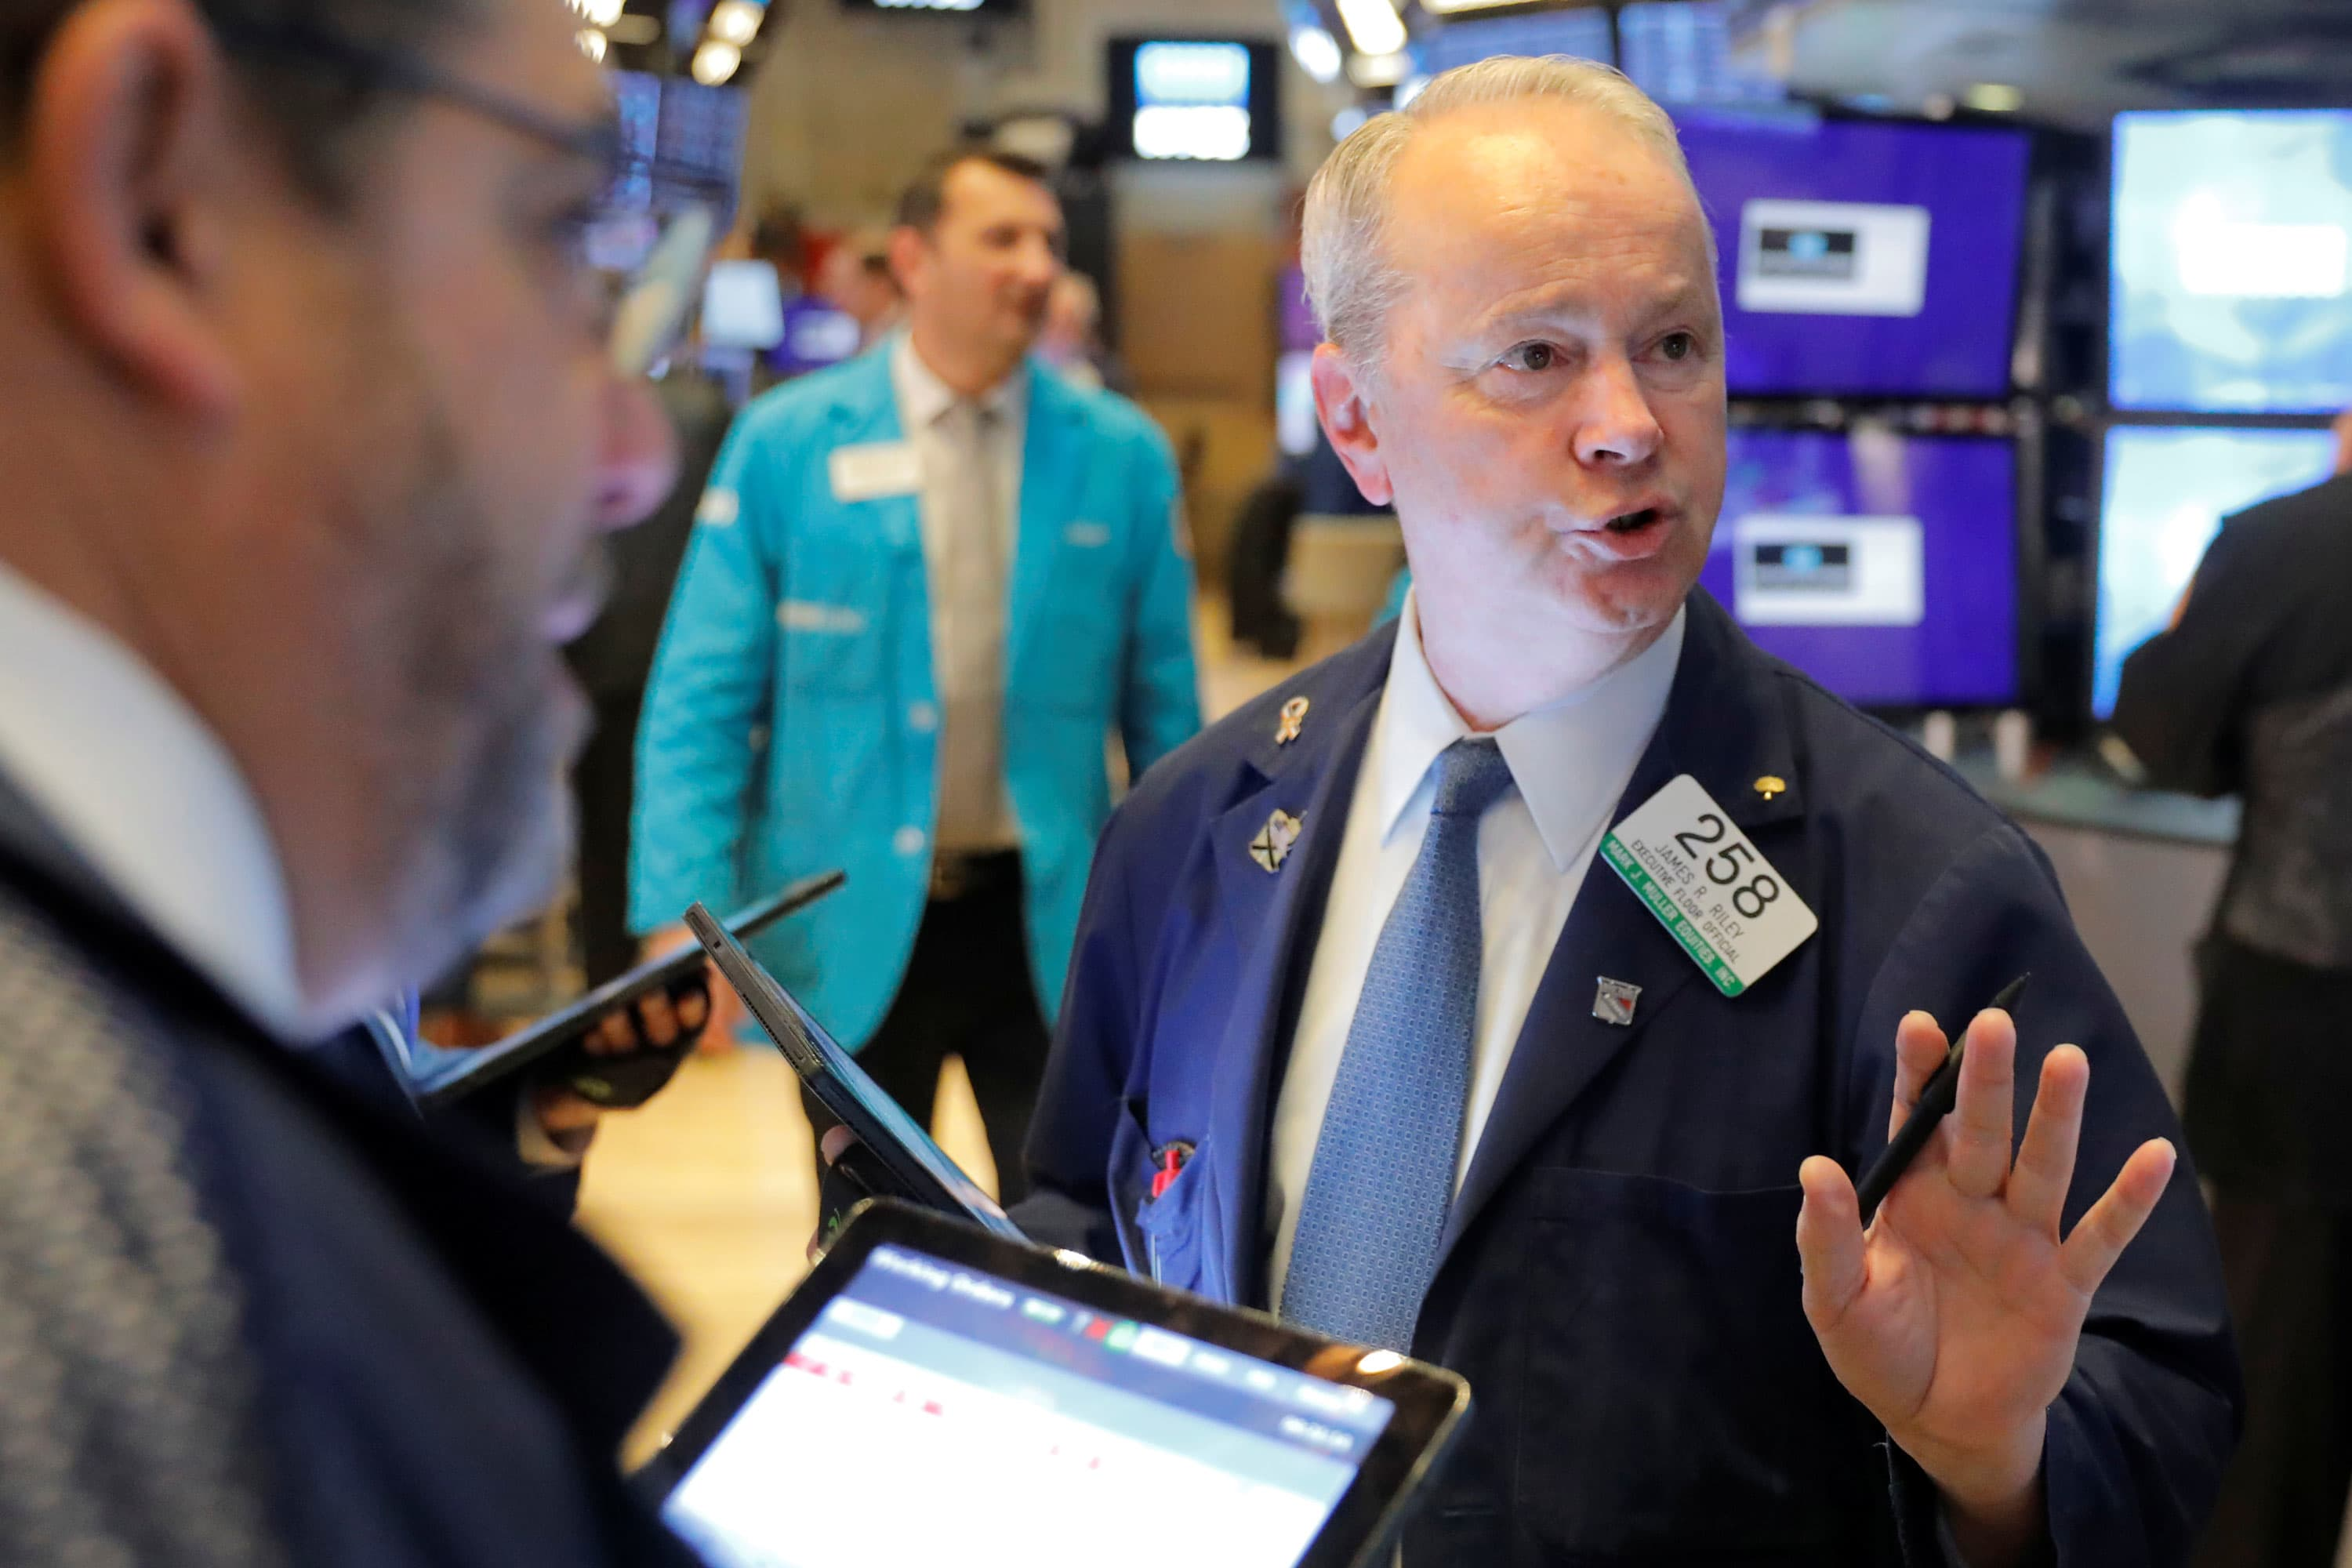 Low interest rates are helping stocks, says strategist